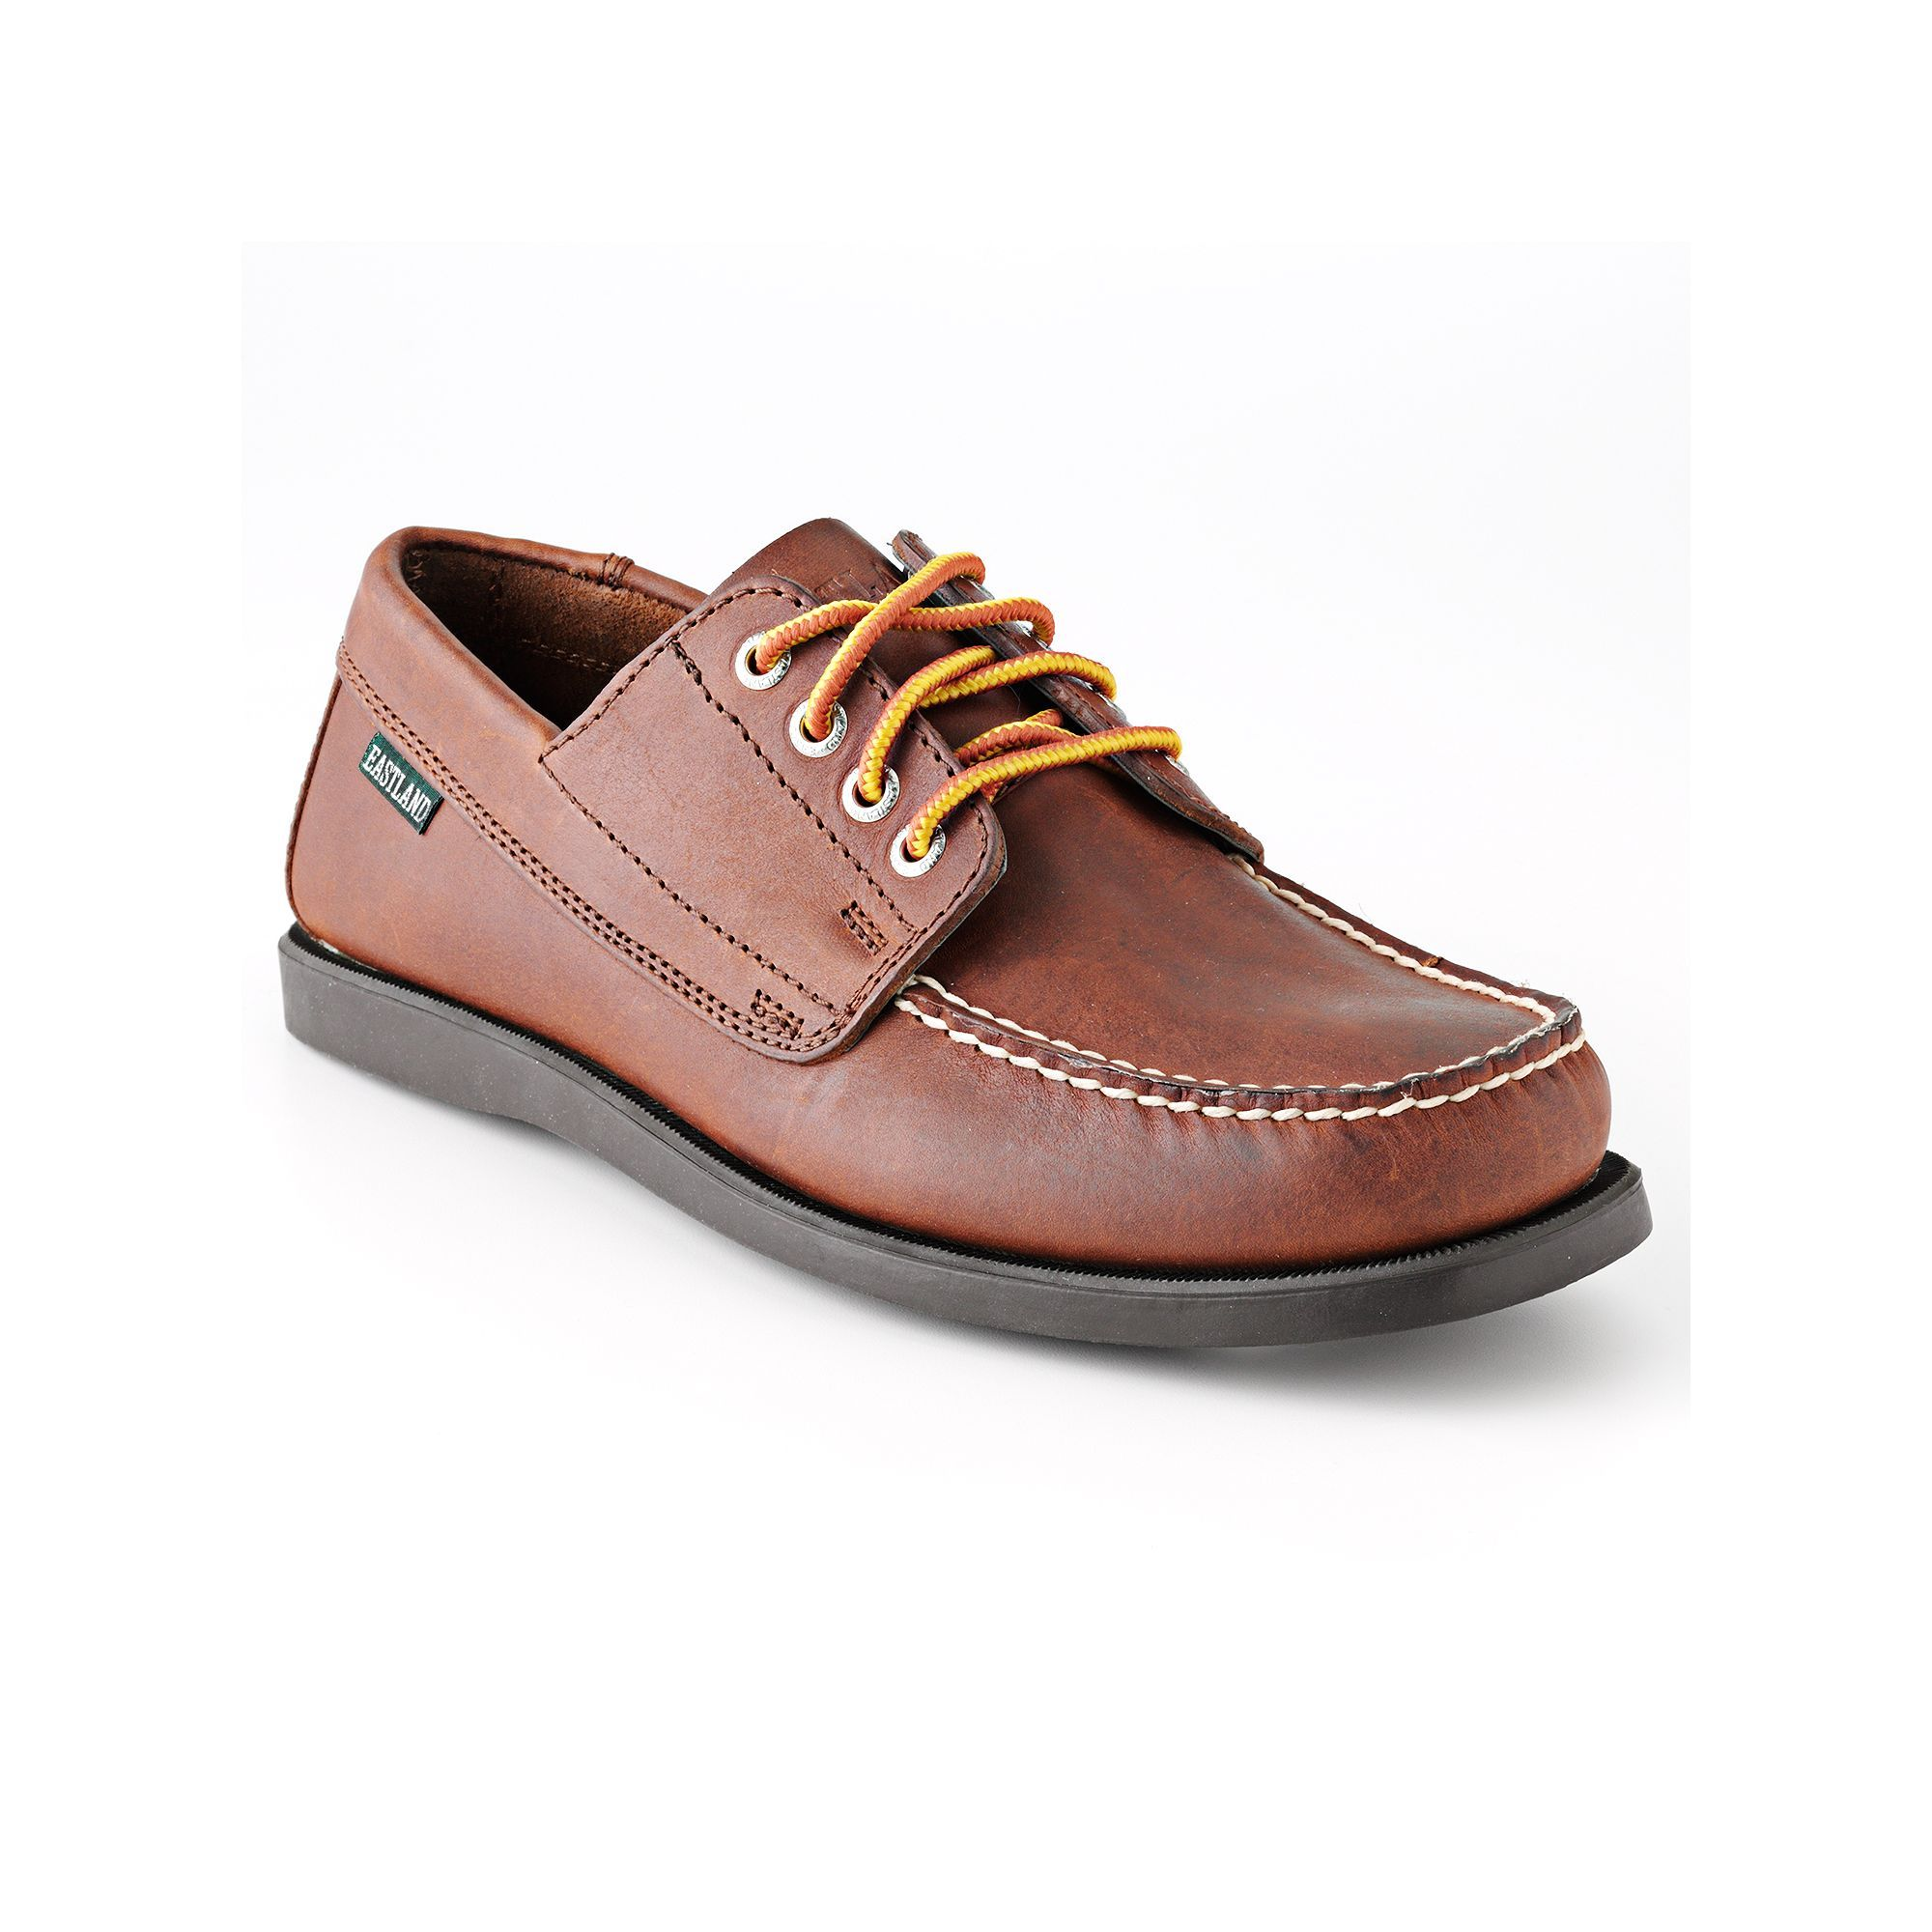 Eastland Mens Boat Shoes Leather Lace up Brown Falmouth Size 9D